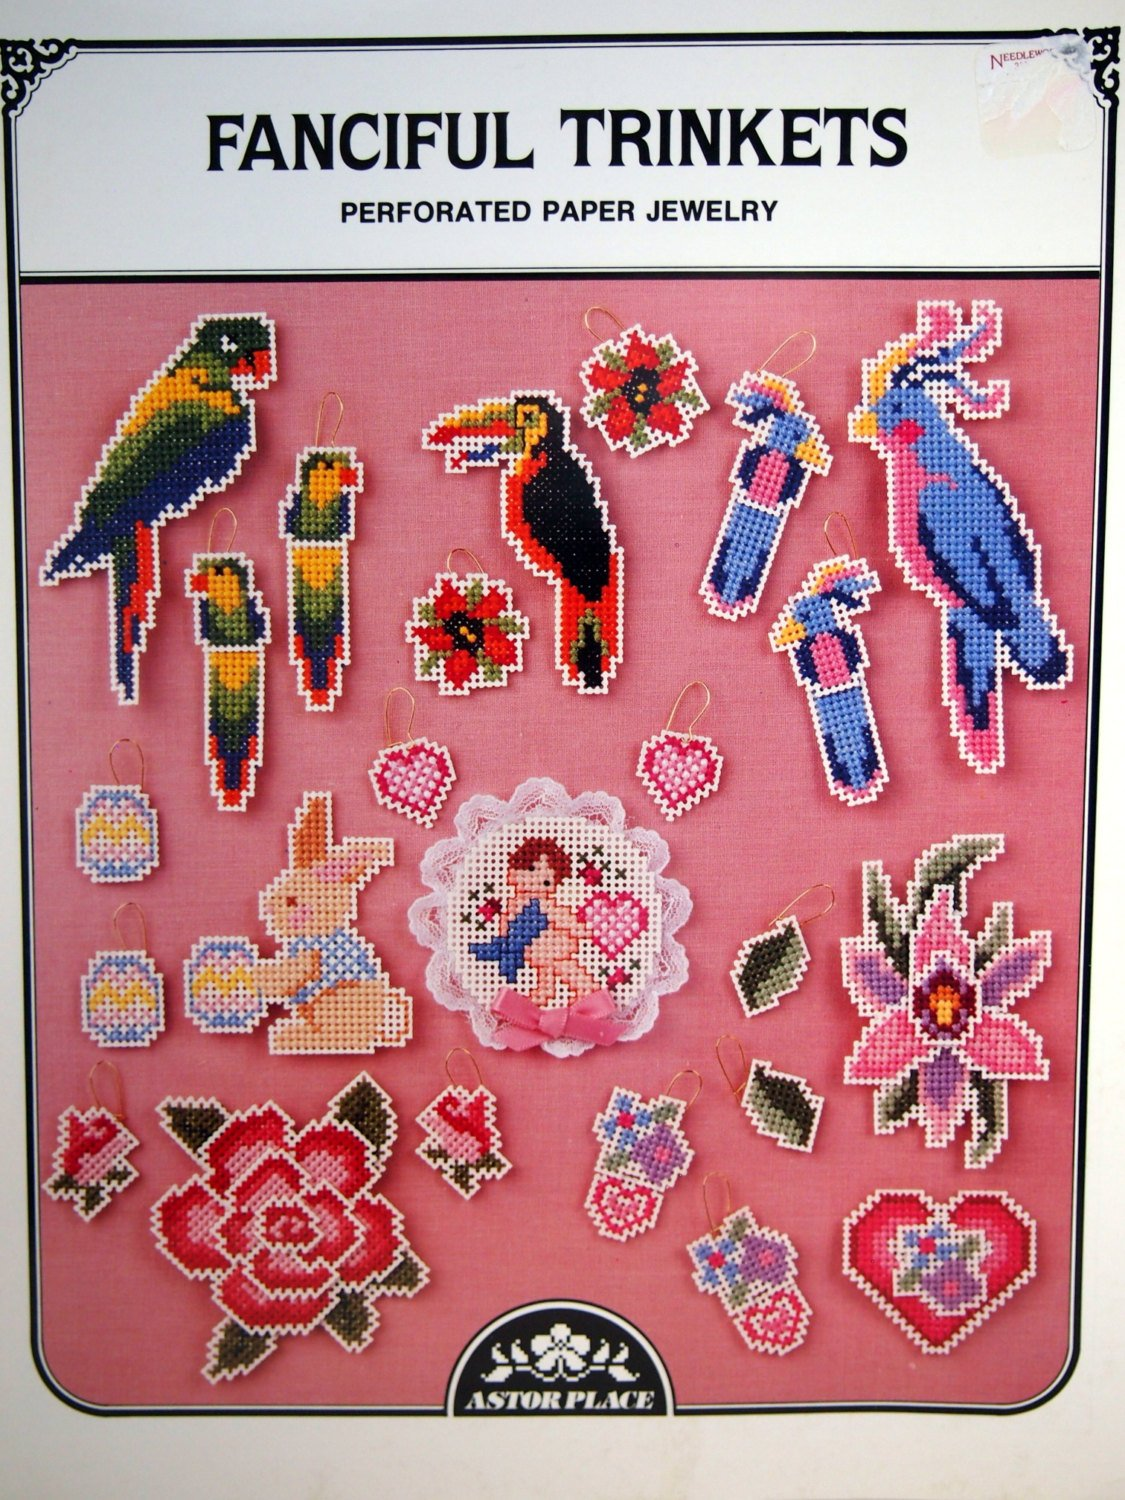 FANCIFUL TRINKETS -Perforated Paper Jewelry by Astor Place Pamplet Book 37